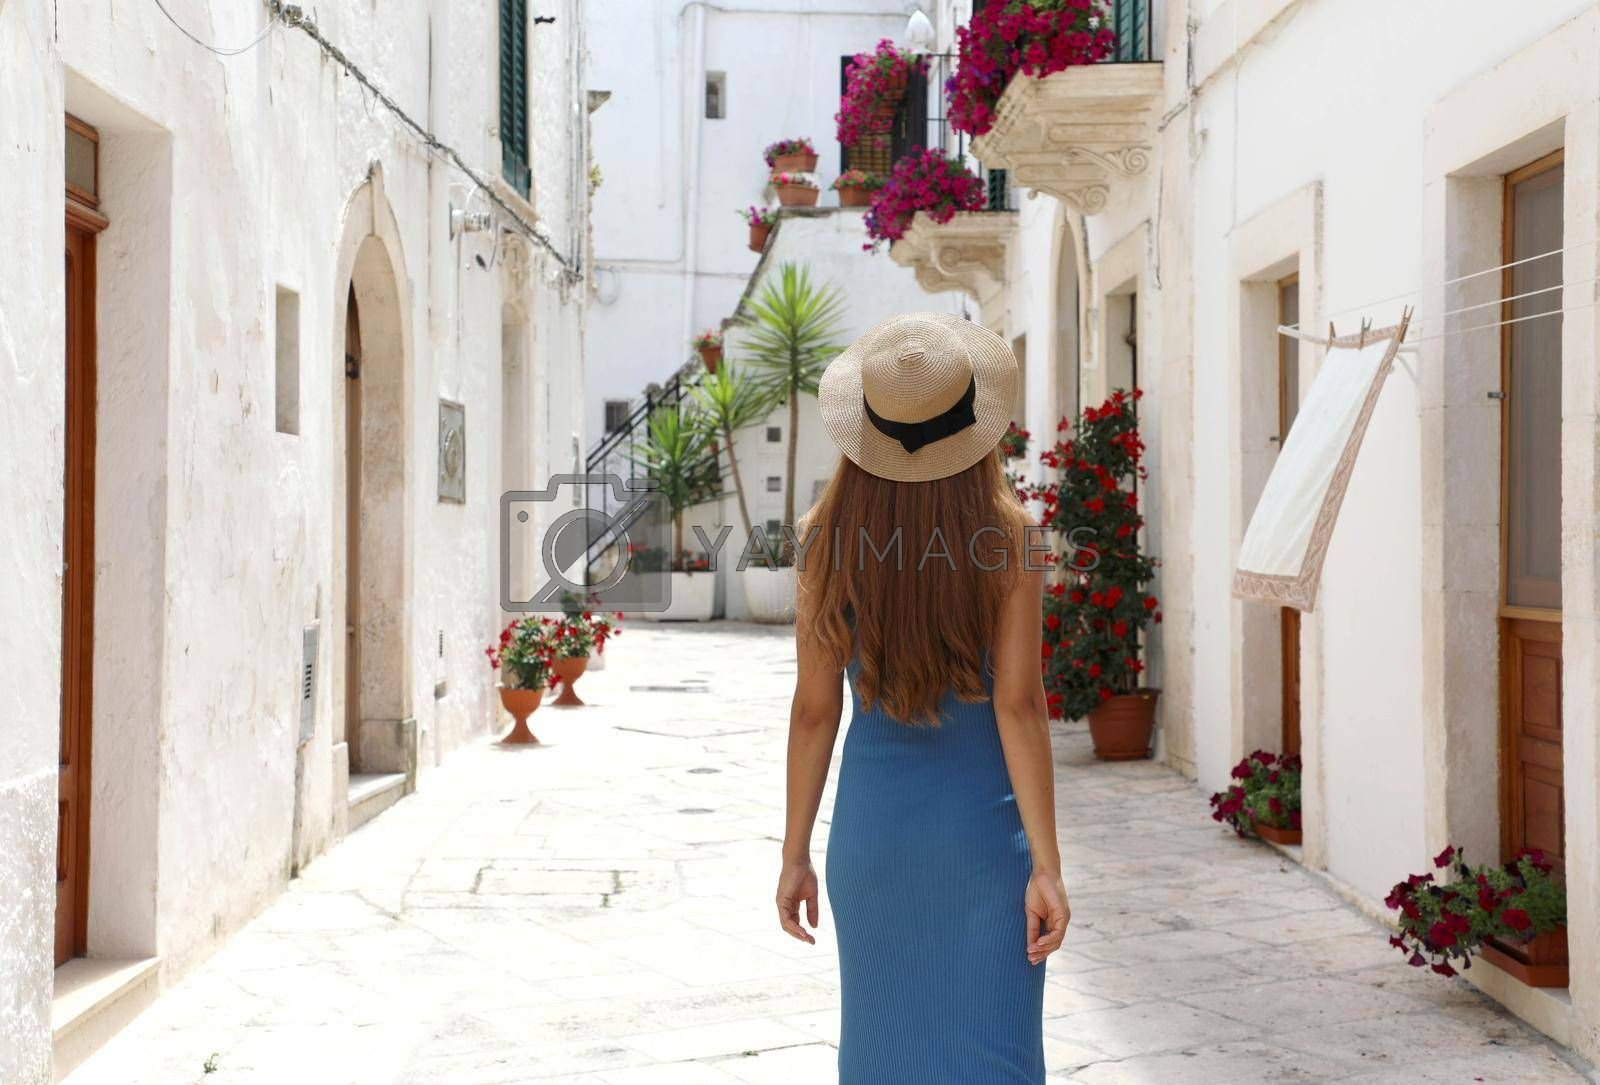 Back view of female tourist walking in old town. Travel woman in straw hat and blue dress enjoying vacation in Europe. Tourism and travel concept.